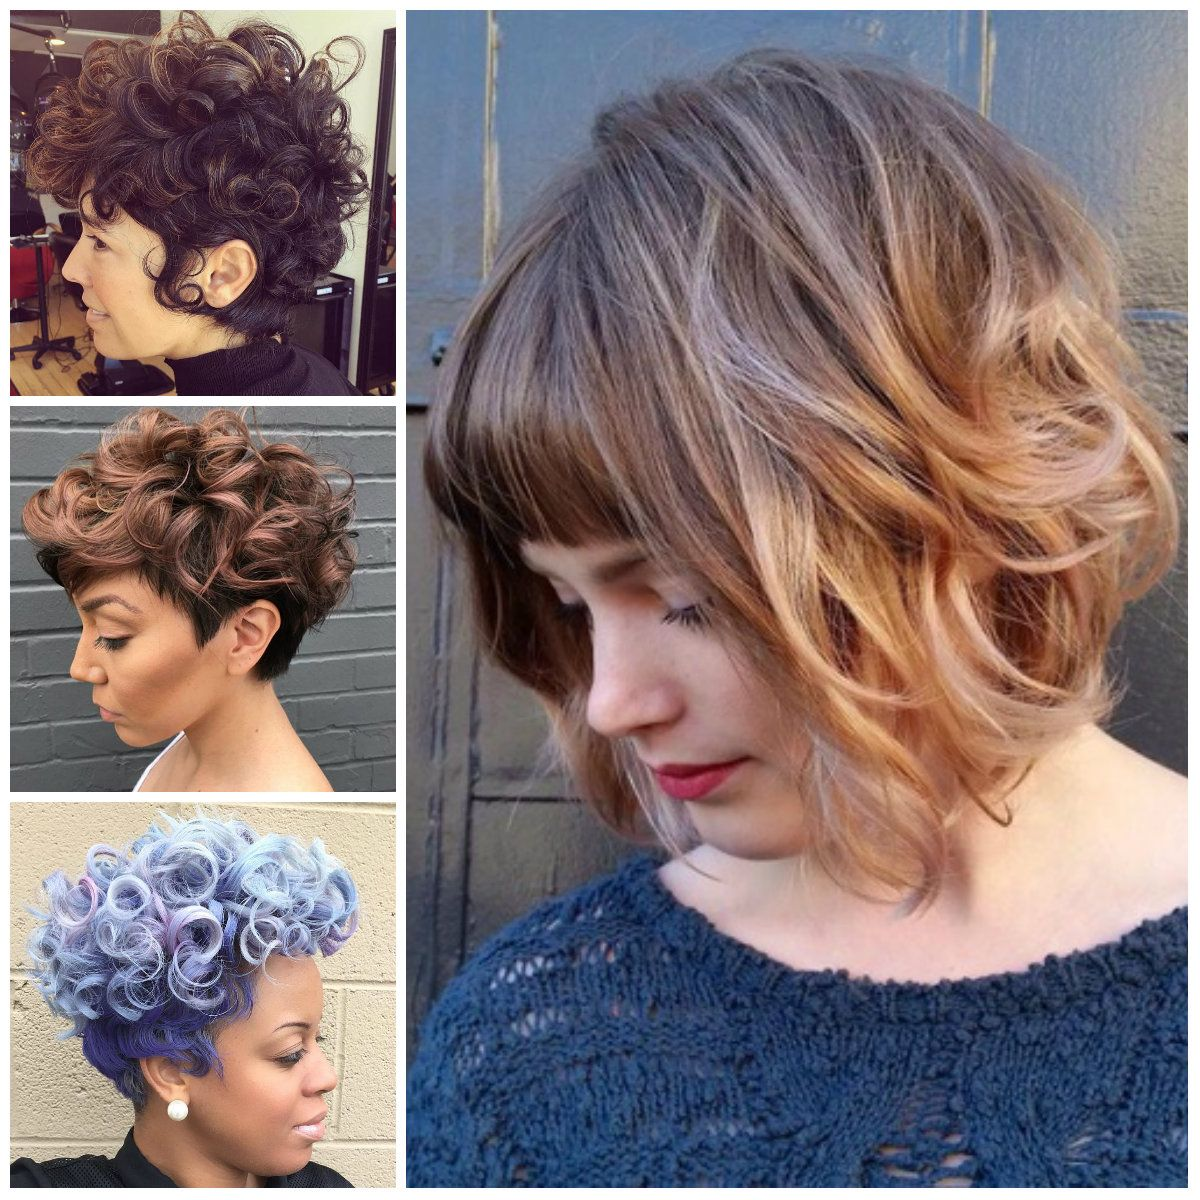 Curly Hairstyles Haircuts Hairstyles 2016 2017 And Hair Colors